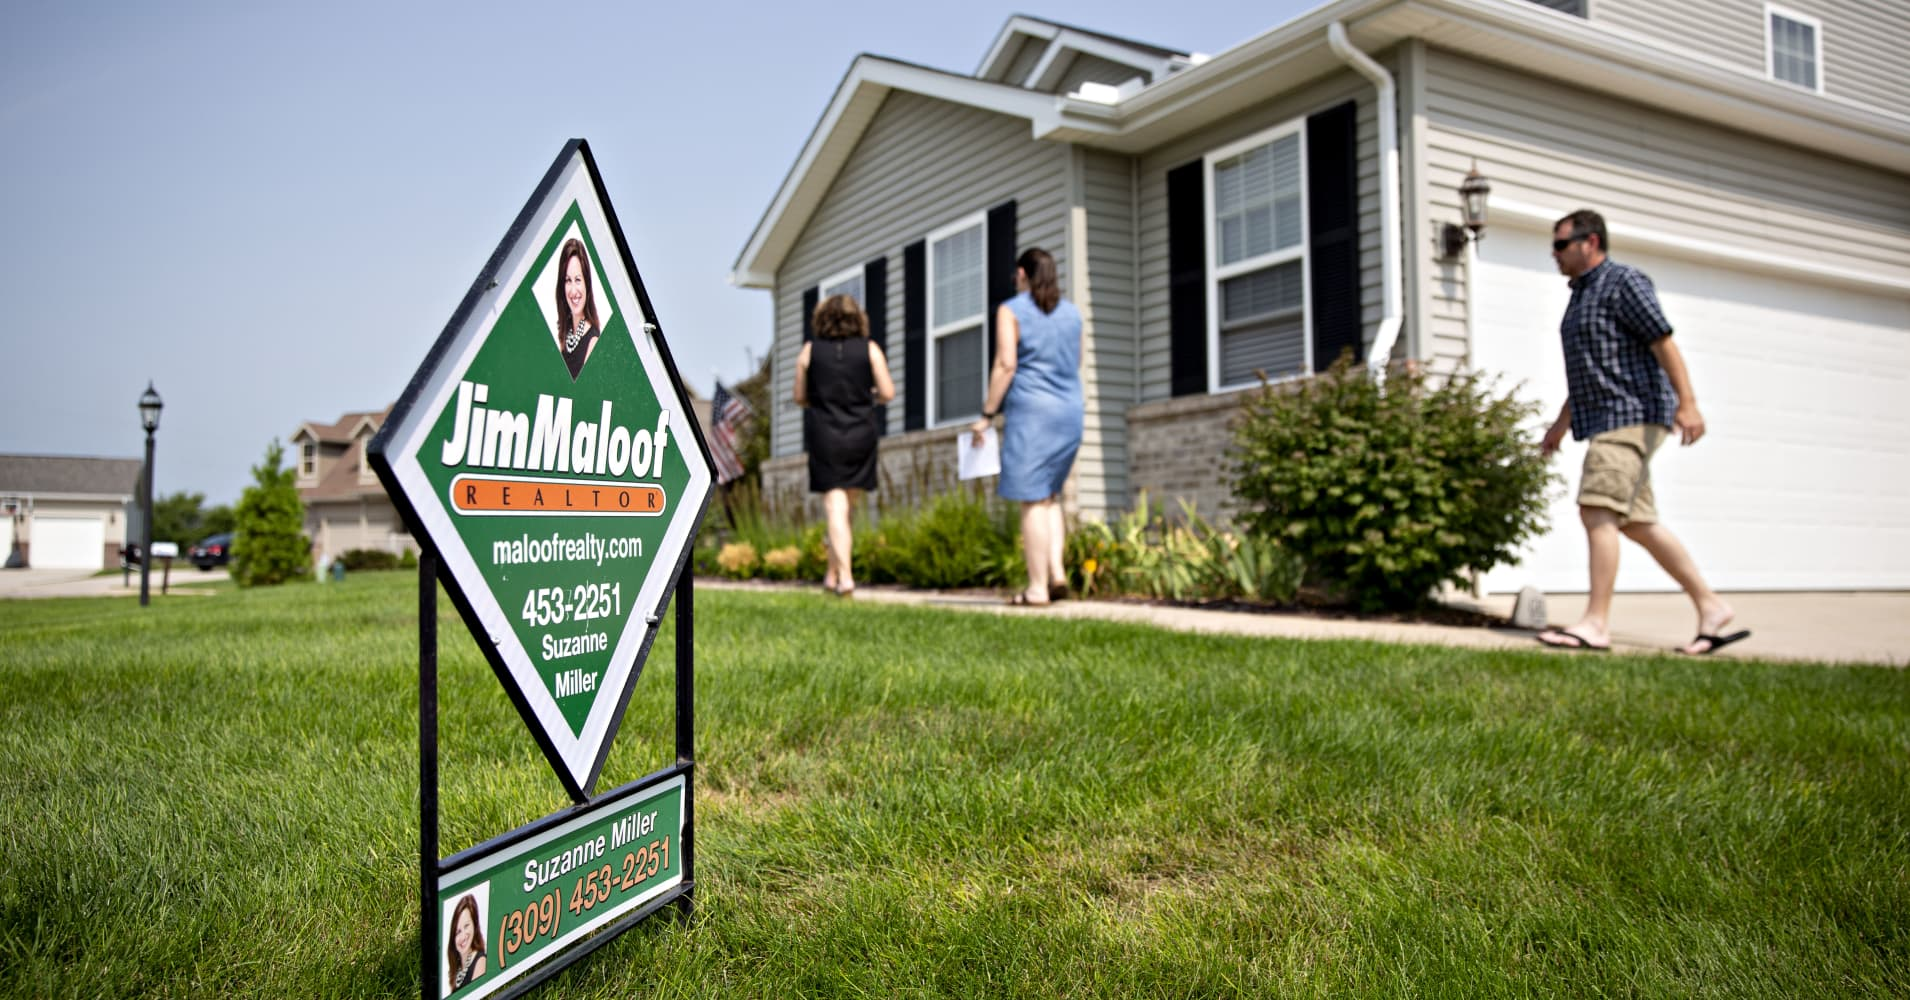 Want to sell your home? Hurry up and list it next week